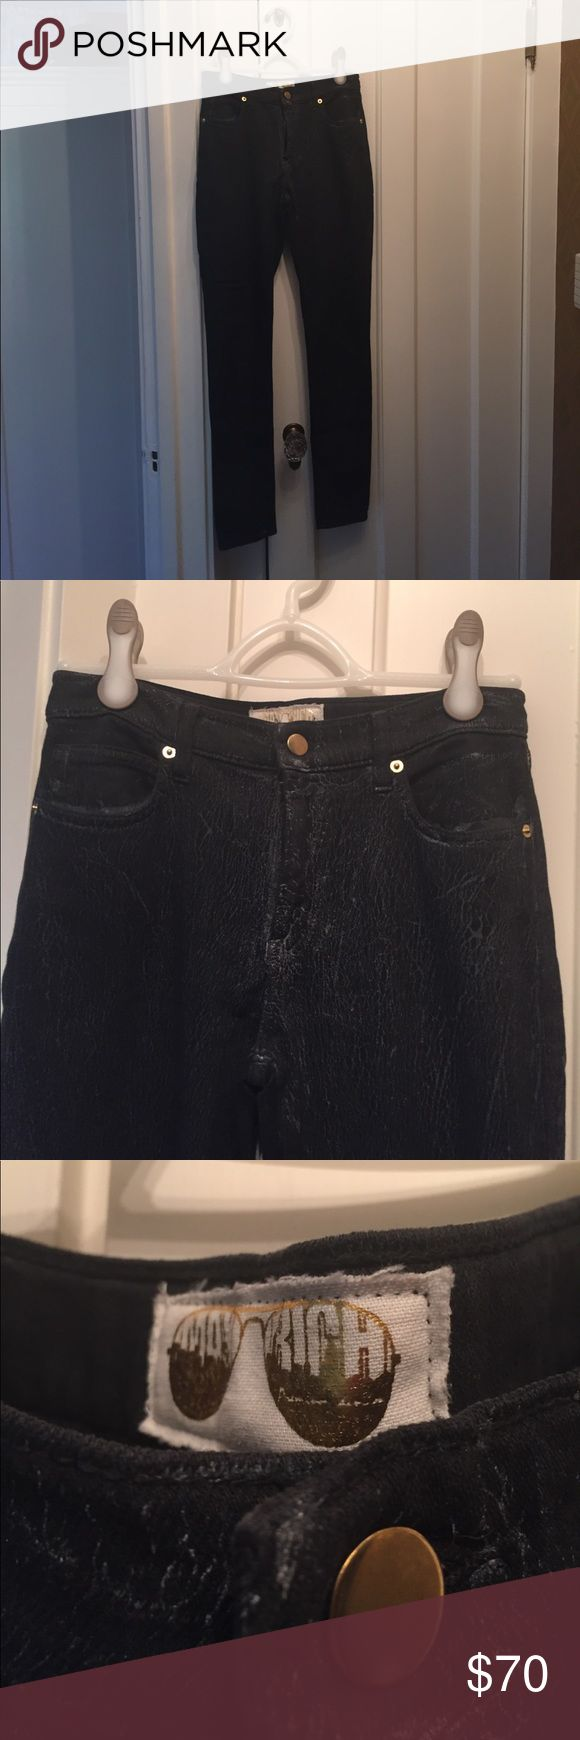 Max Rich Kardashian Soft Skinny Jeans Bought at DASH Kardashian Store.  Look like jeans but do not feel like them.  98% cotton 2 percent spandex. Soft and stretchy. Blackish navy with cracked silver design.  Comfy material and great condition, I just don't like skinny pants. Max Rich Pants Skinny